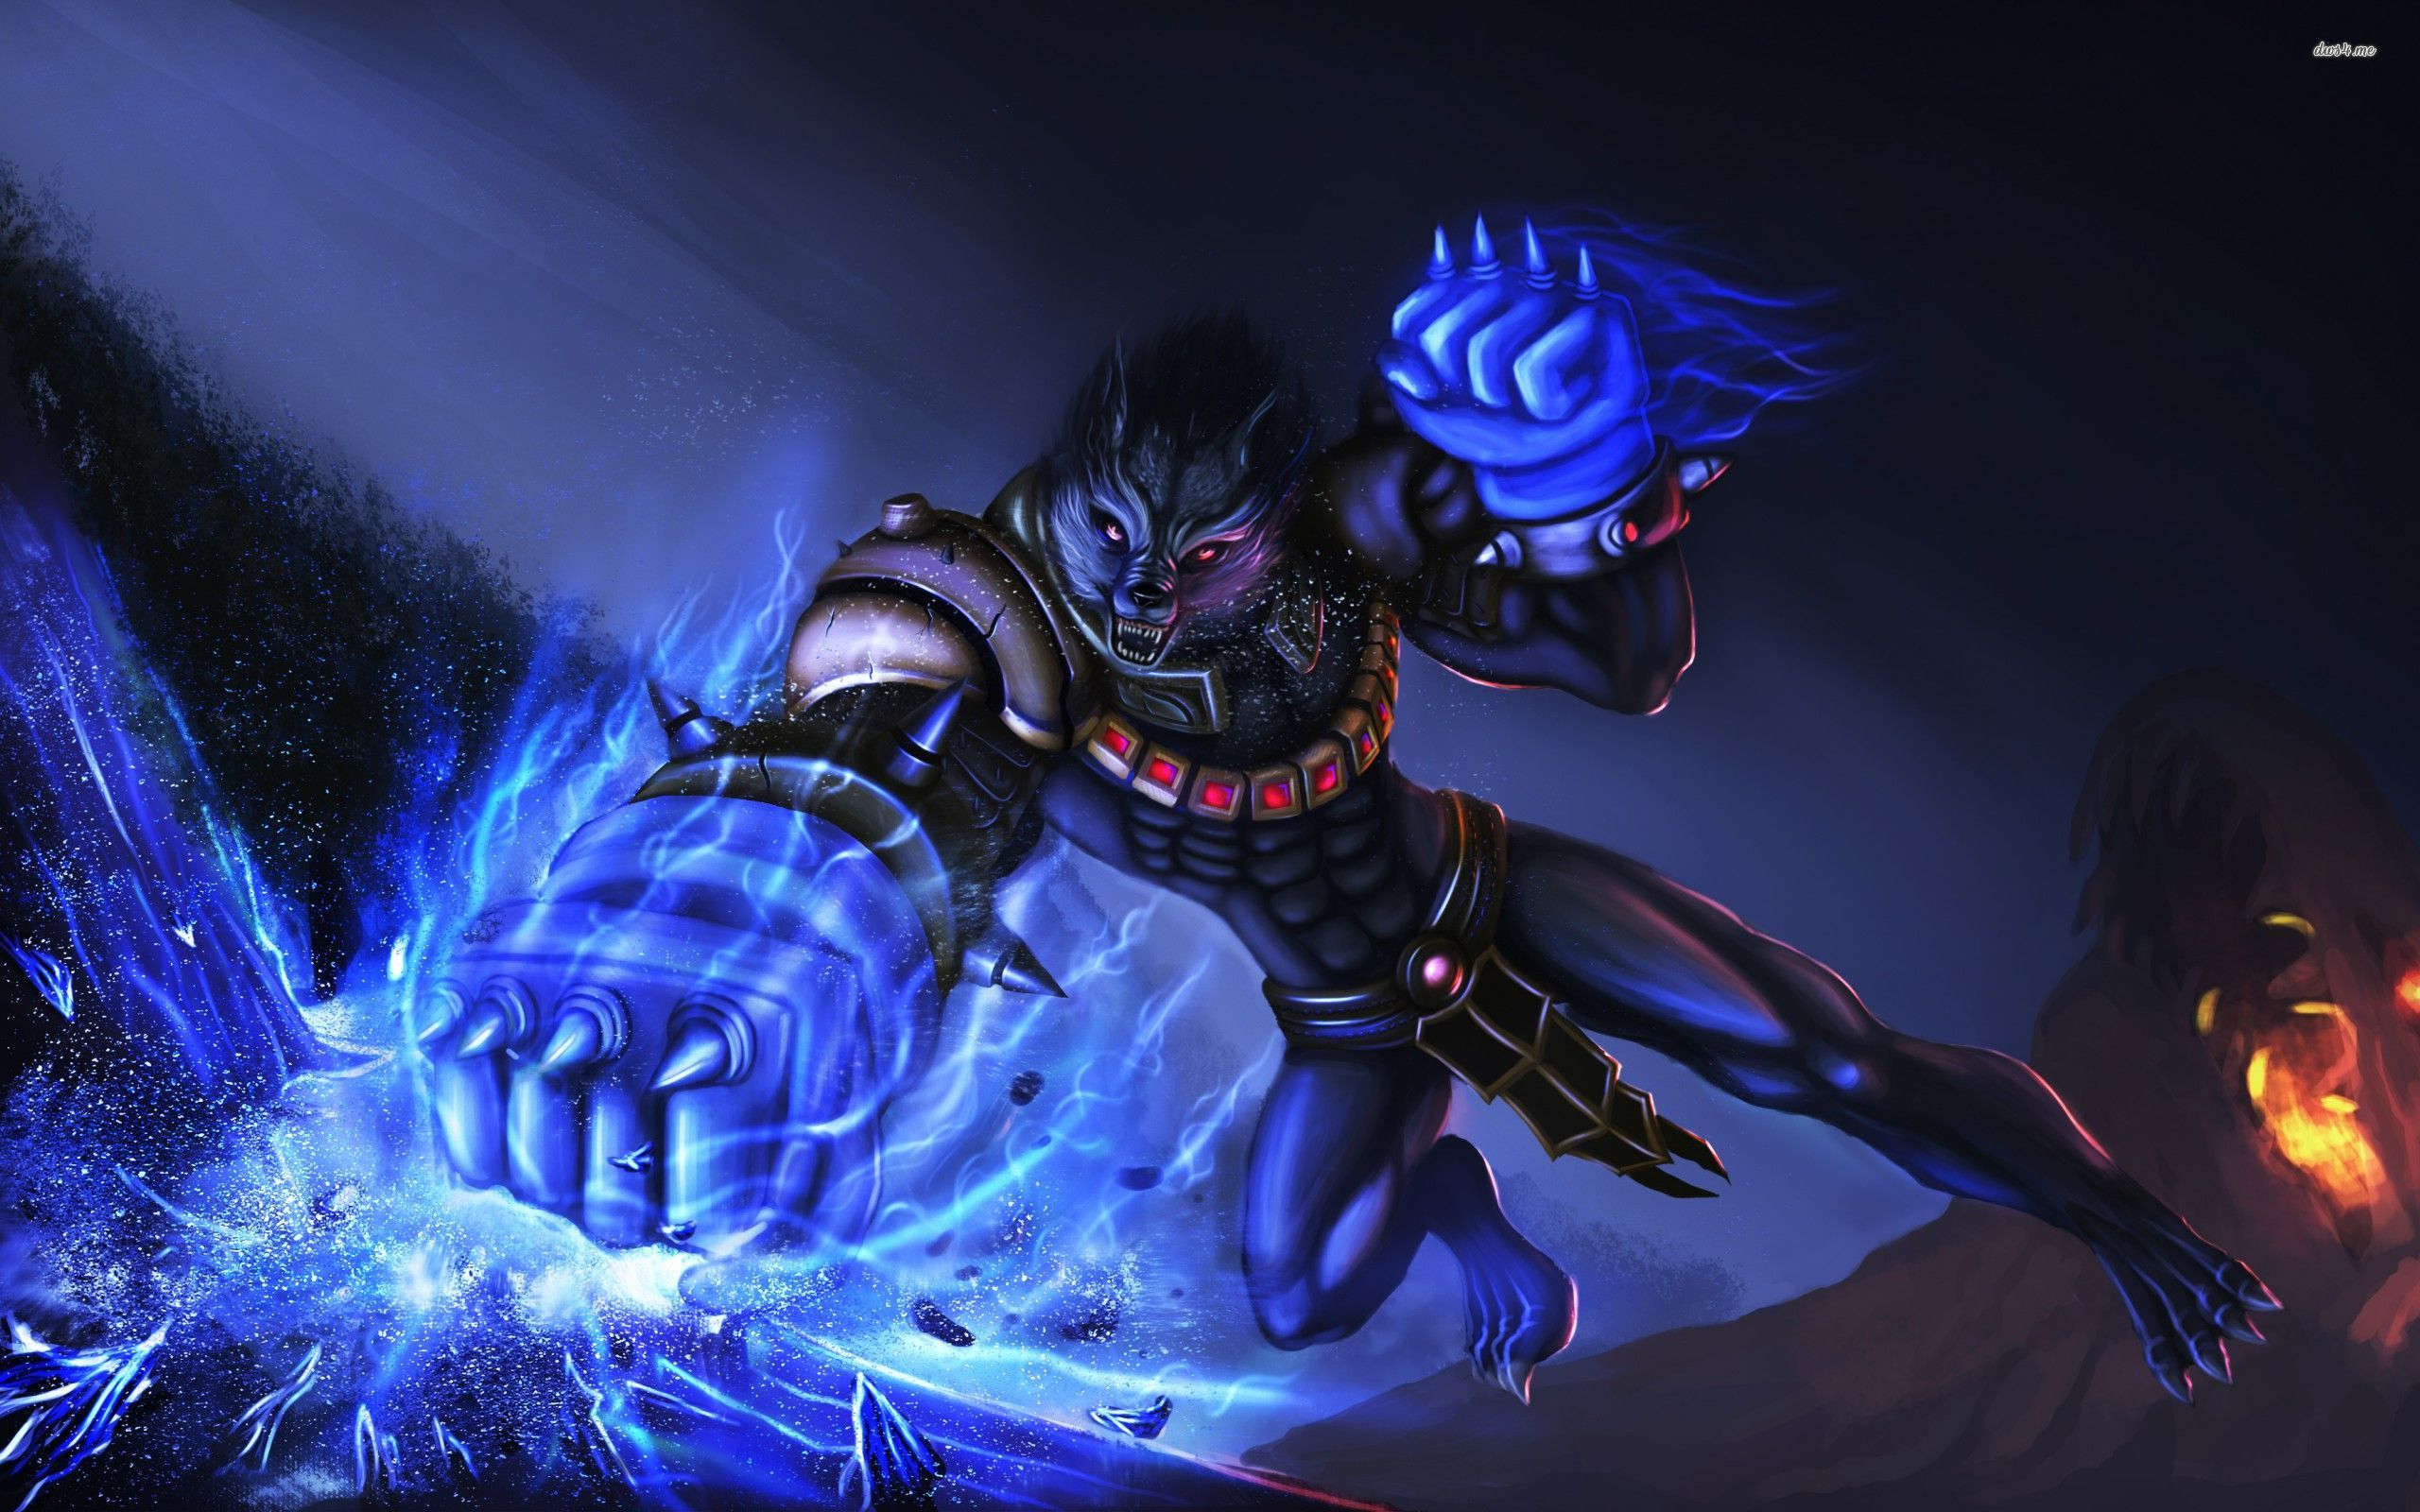 League Of Legends Wallpaper Lol Warwick 428426 Hd Wallpaper